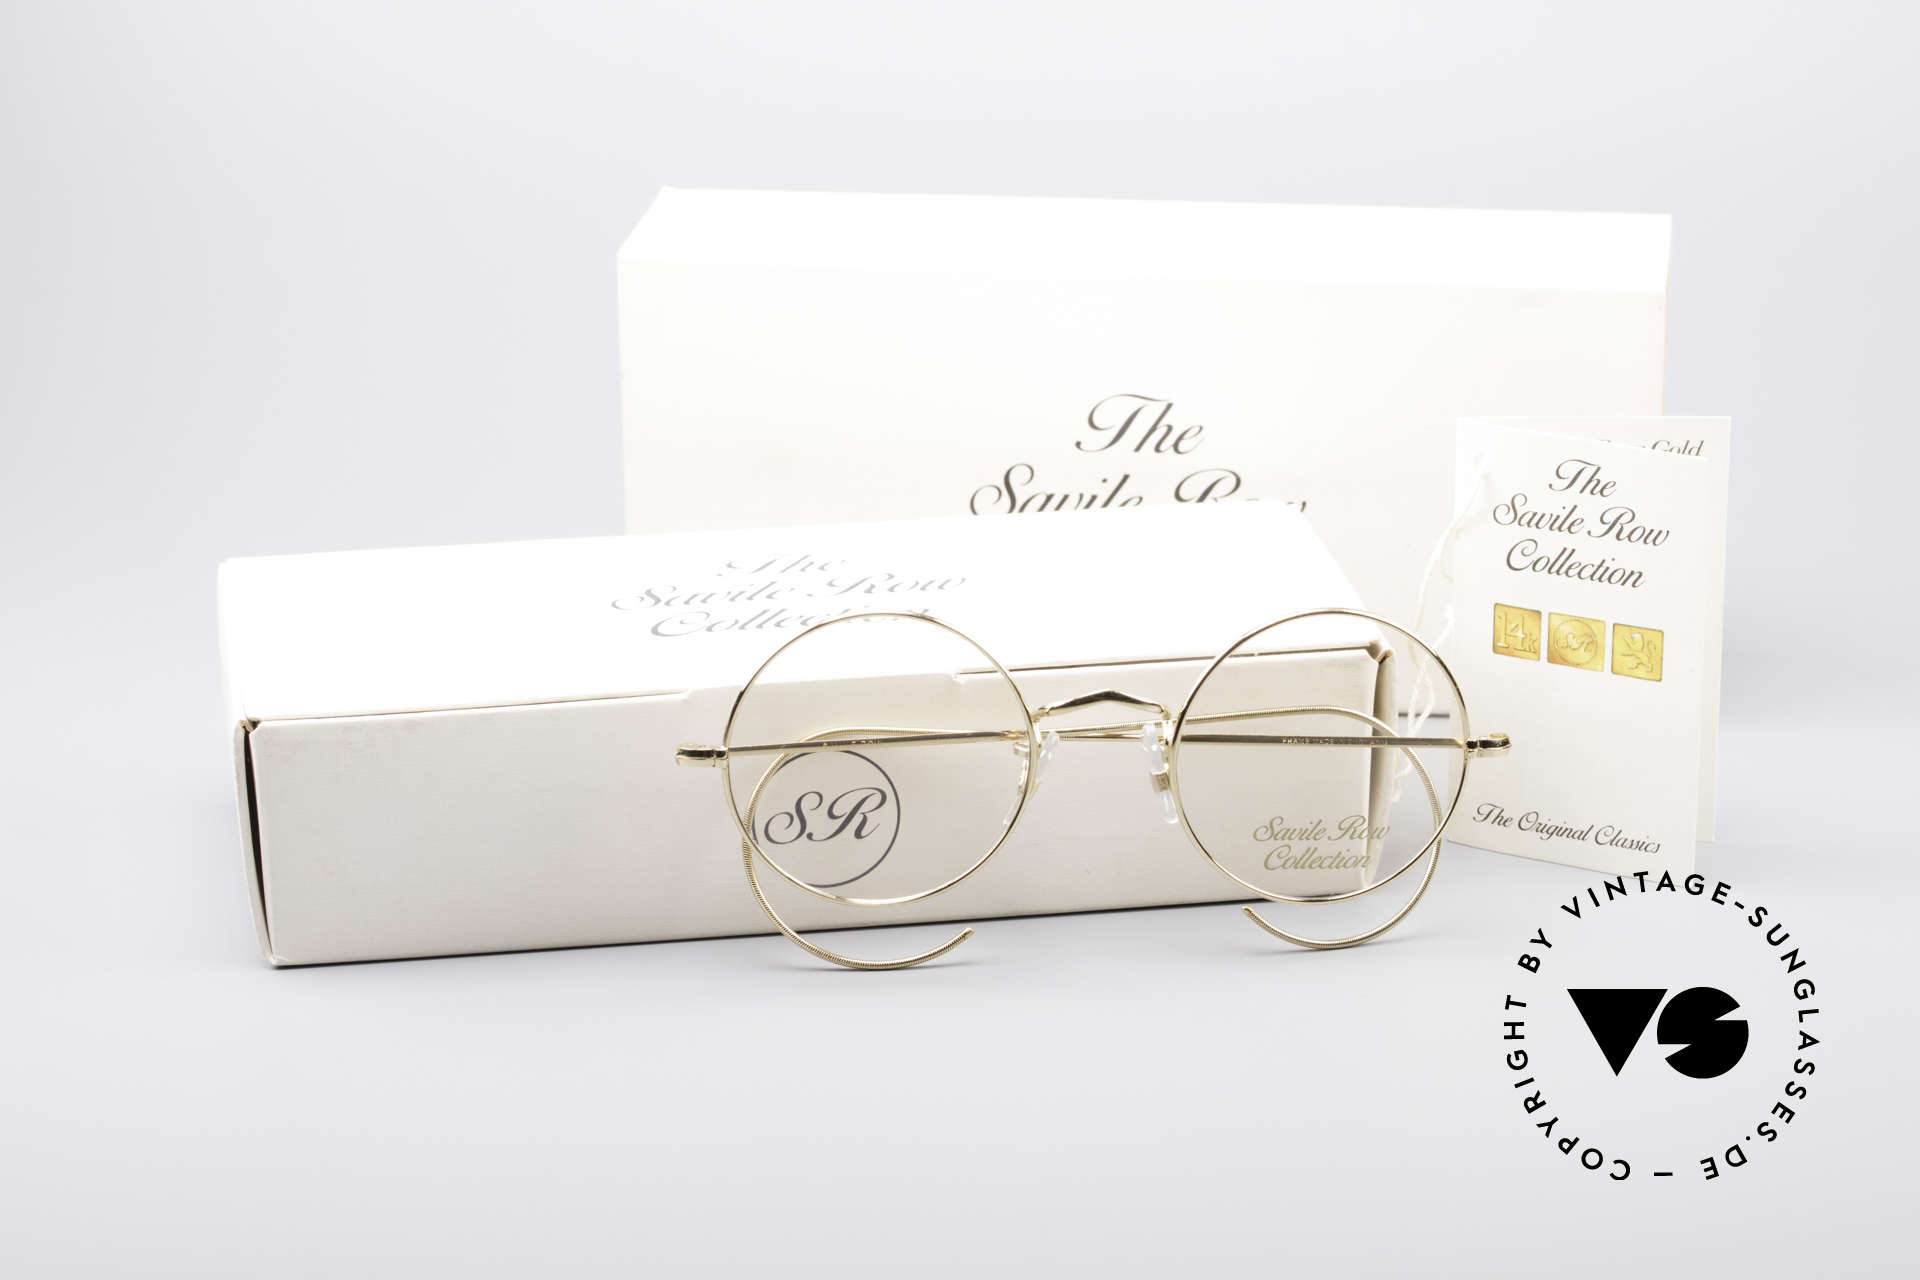 Savile Row Round 44/20 14kt Gold Frame, unworn rarity in S size 44-20 (incl. orig. packing), Made for Men and Women